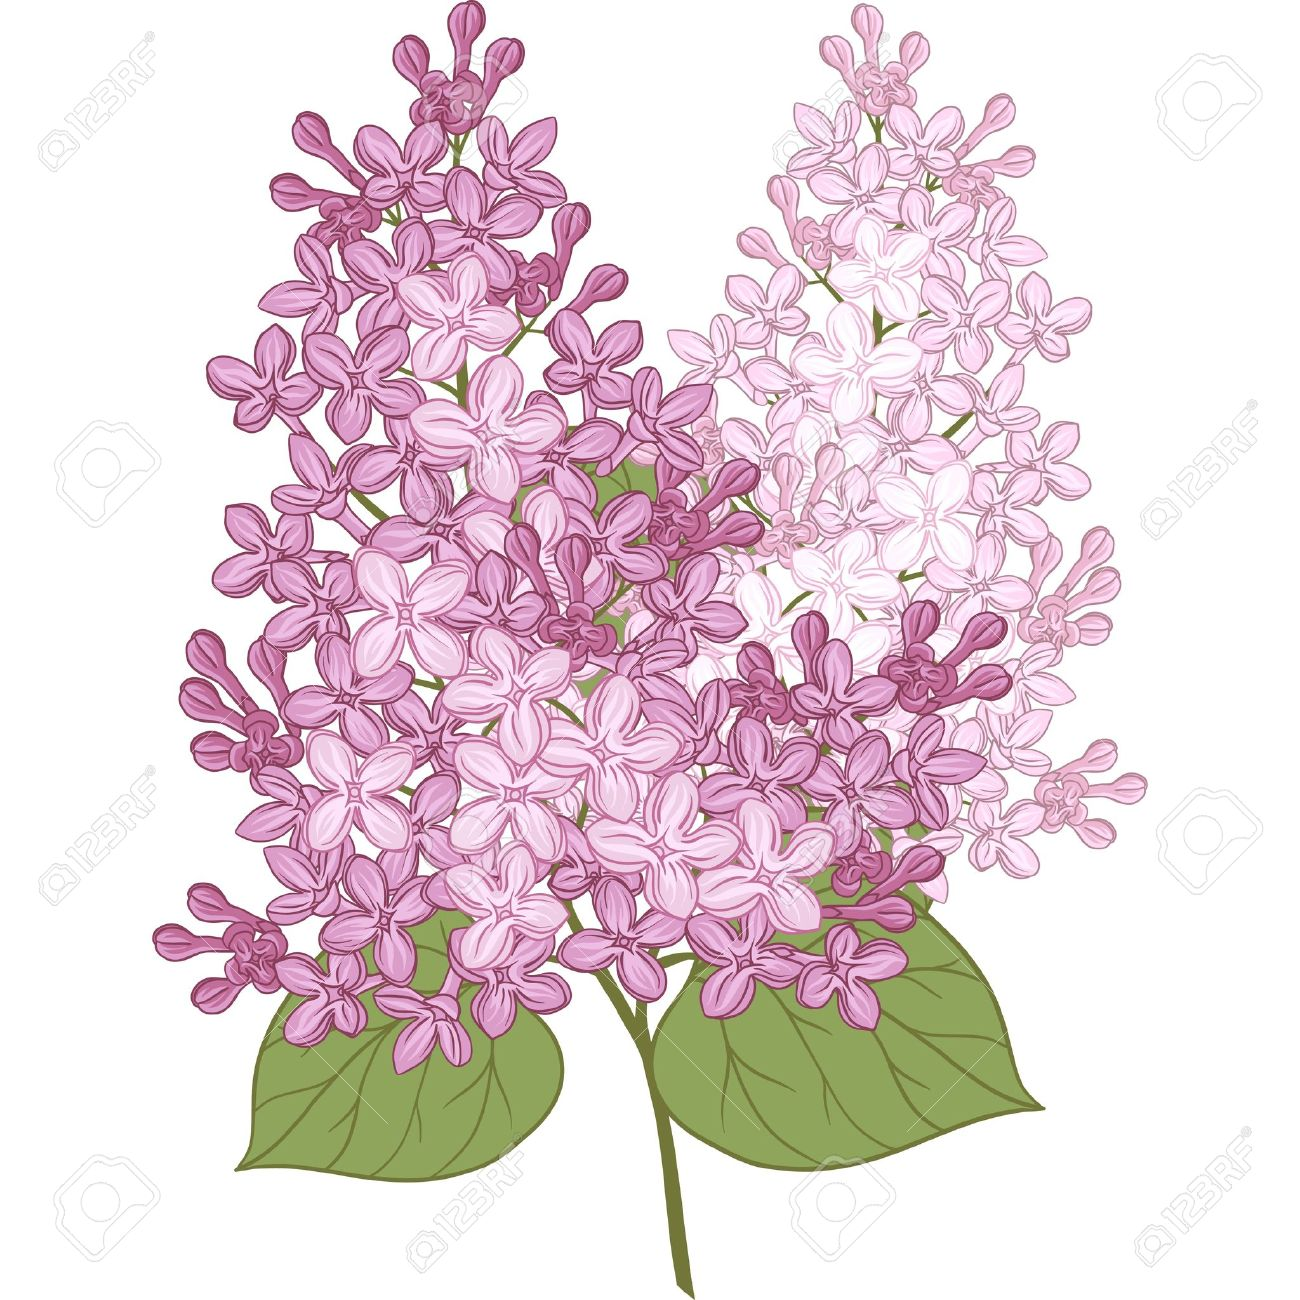 Lilac flower clipart.